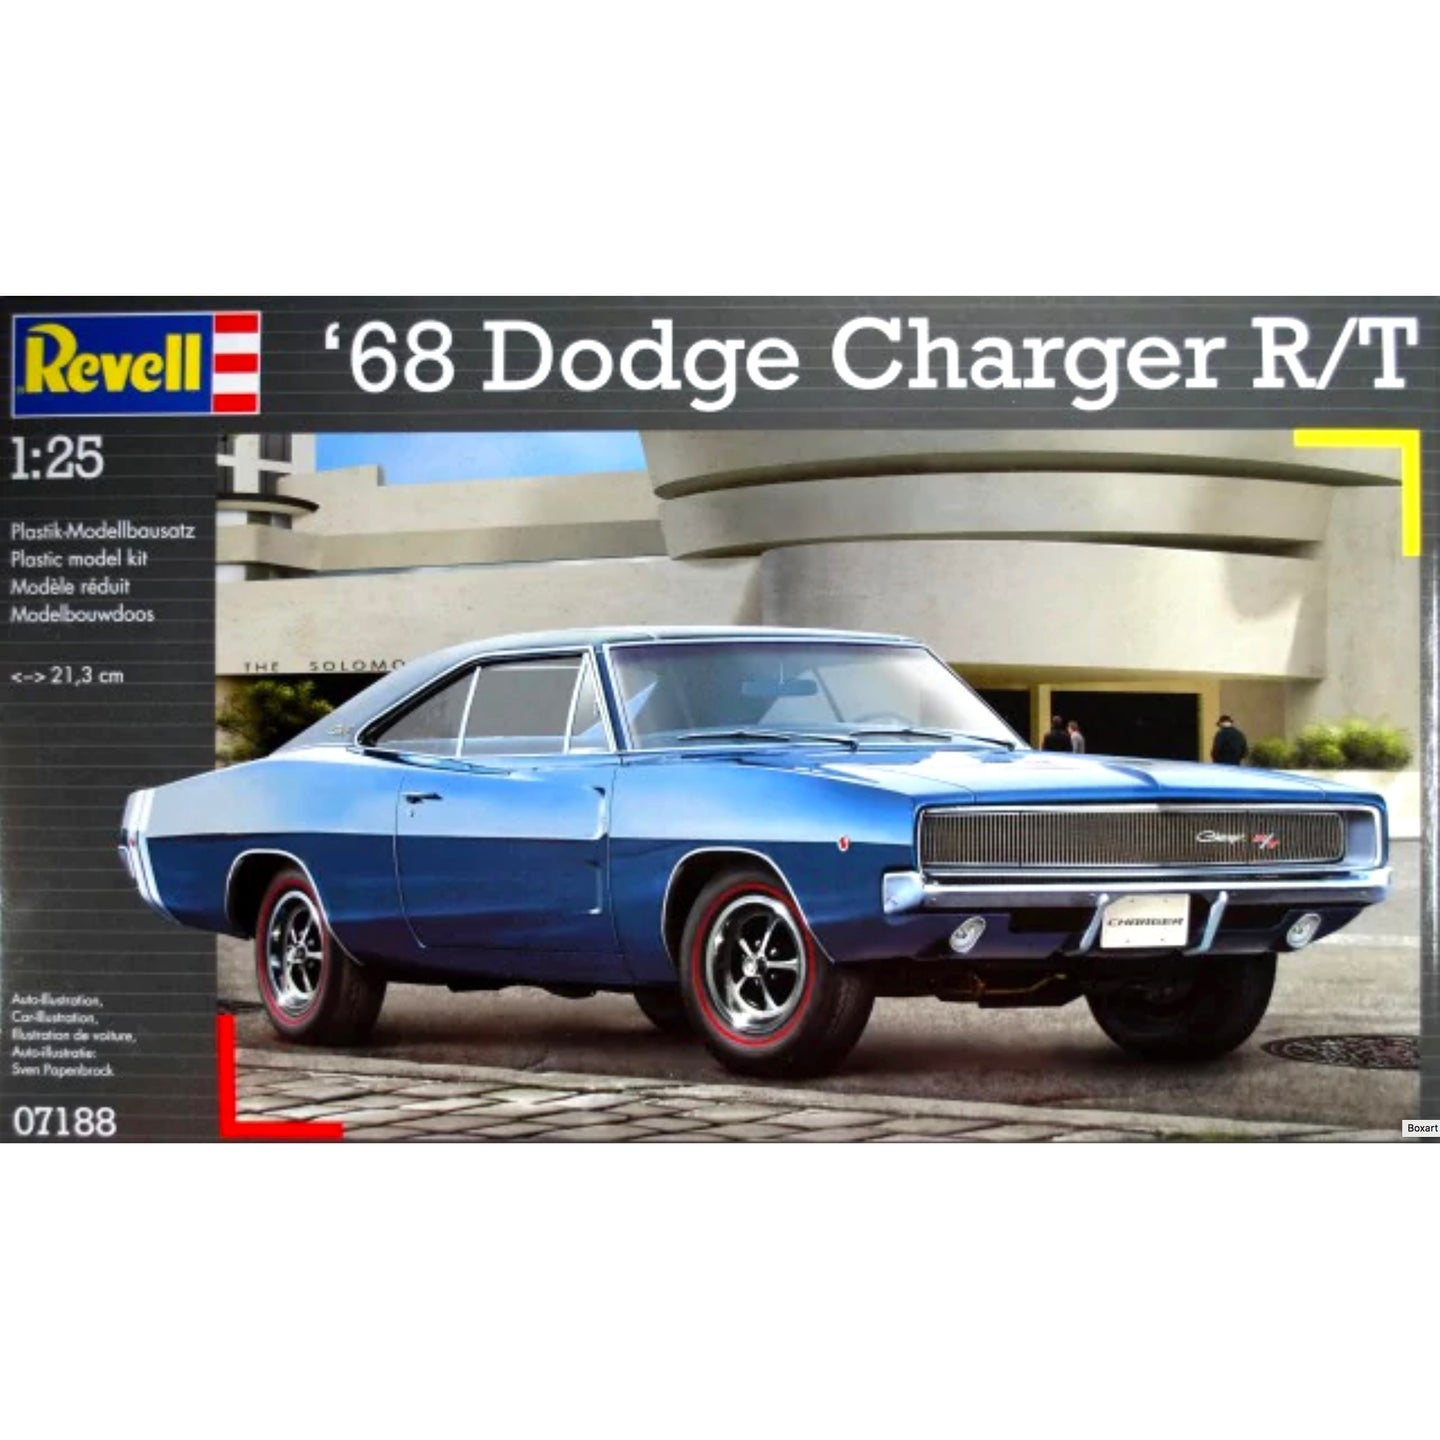 Revell 1/25 Dodge Charger R/T 1968 07188